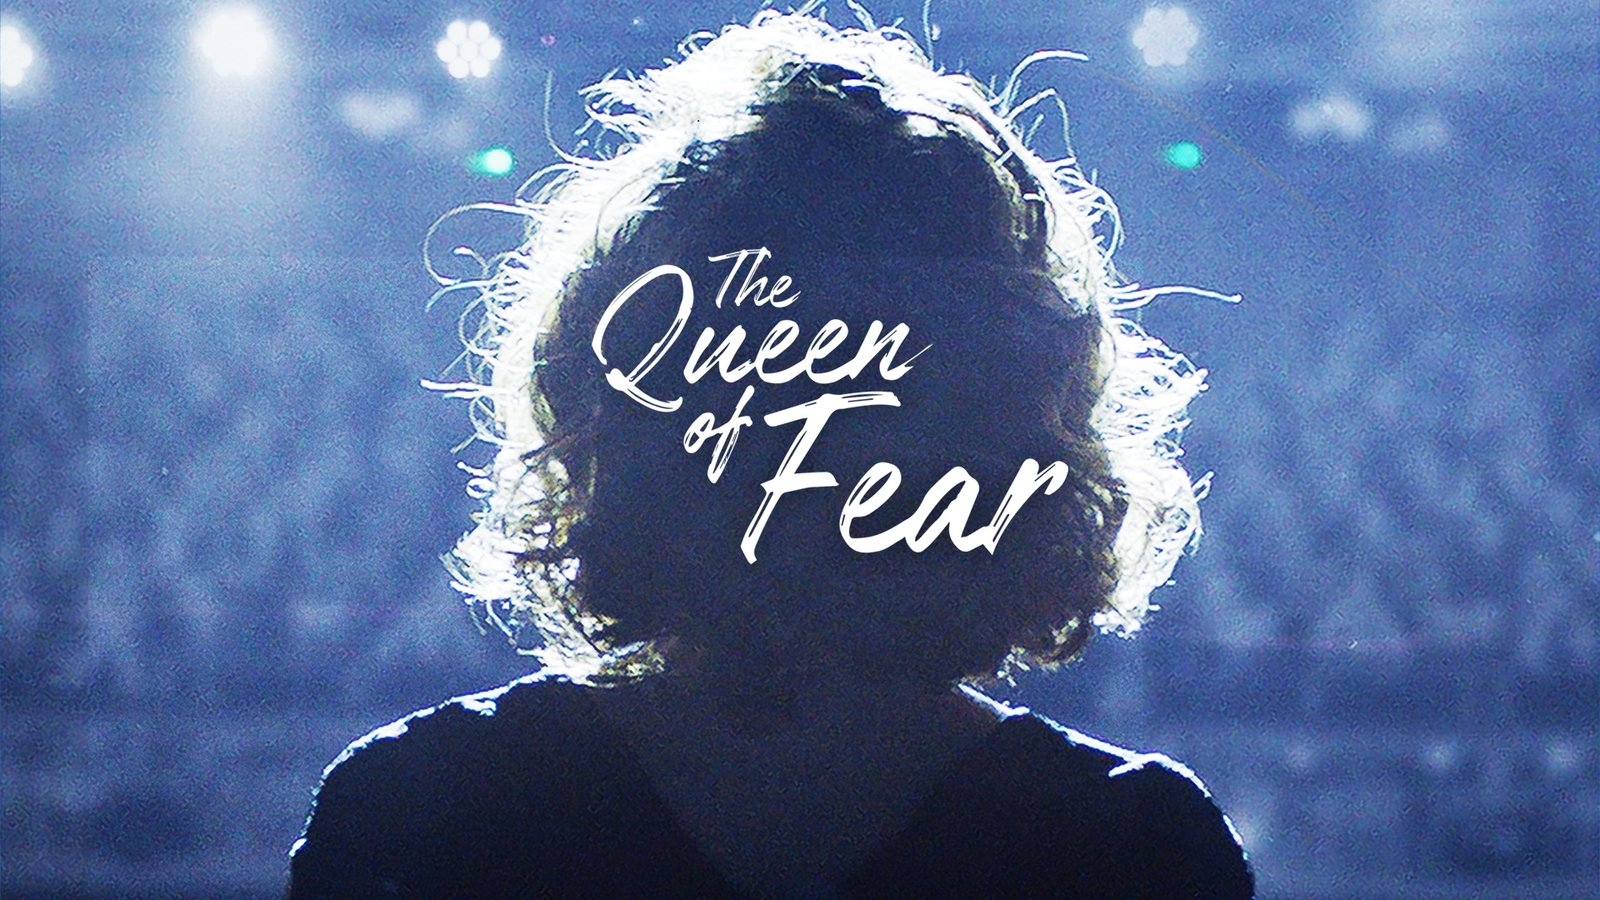 The Queen of Fear - La reina del miedo